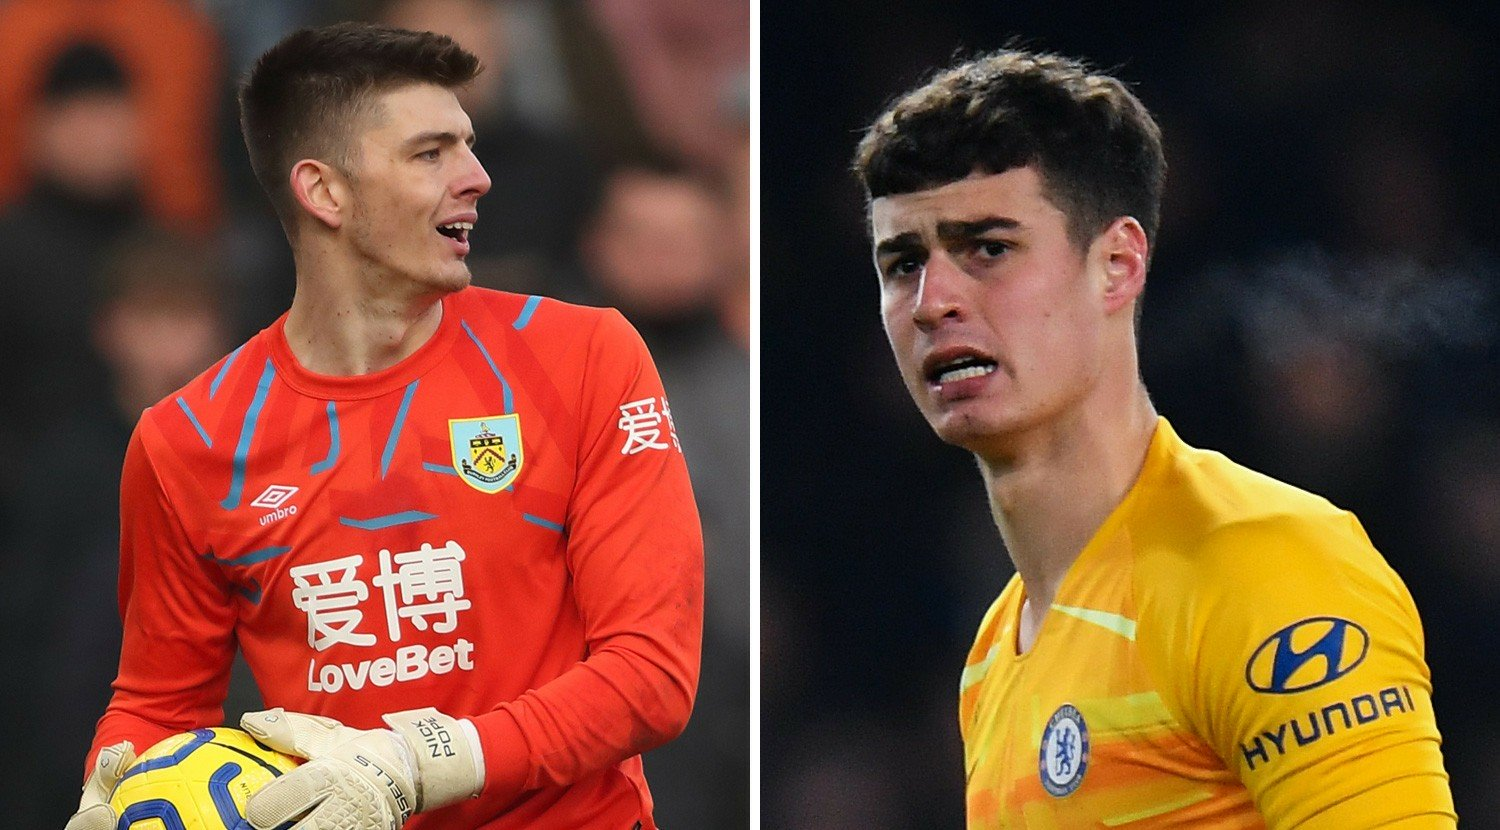 burnley want 50m for nick pope - Bóng Đá